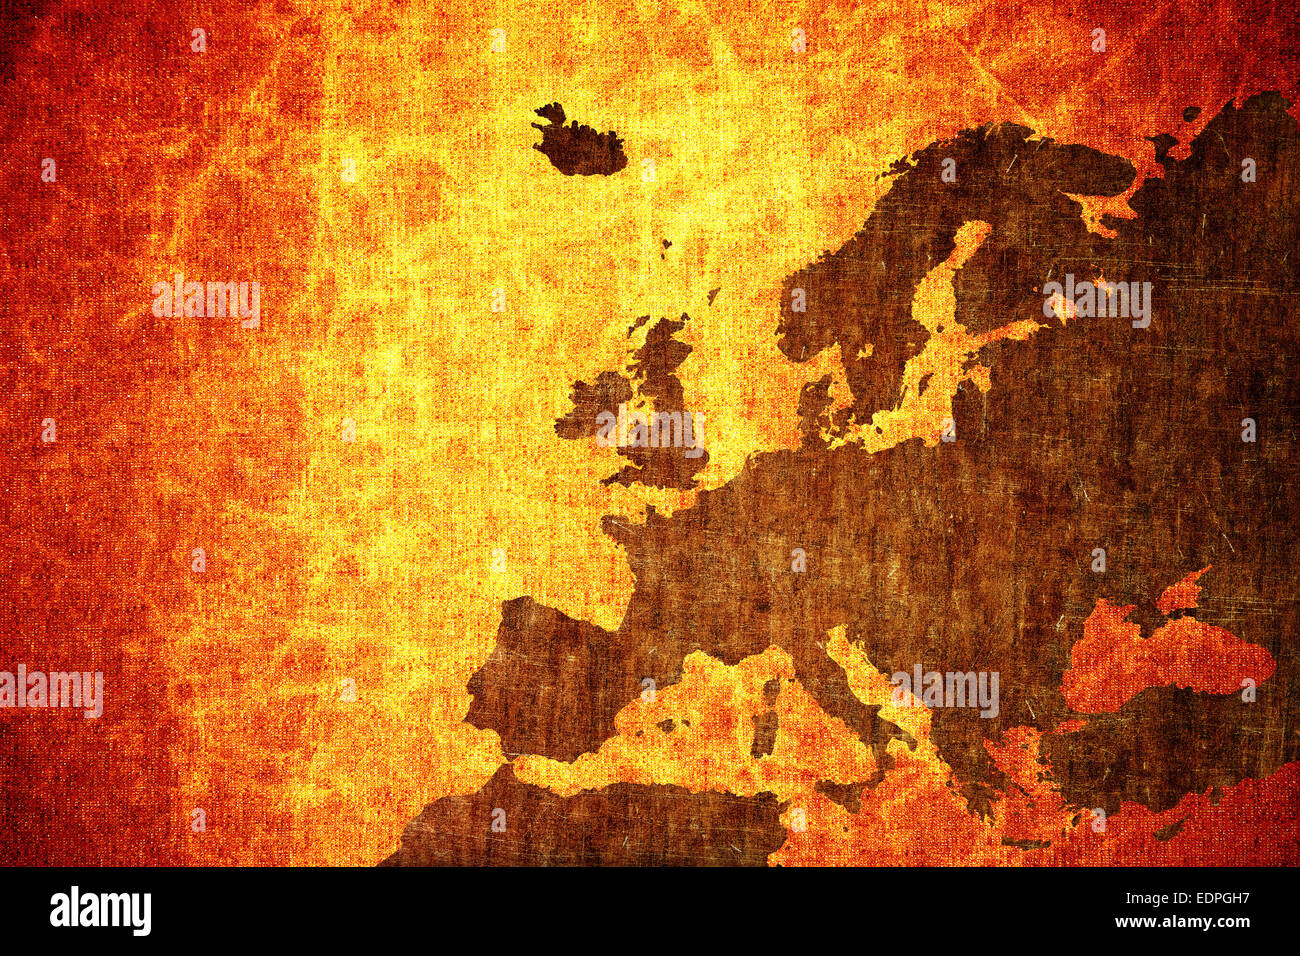 Grunge vintage scratched europe map background stock photo 77327971 grunge vintage scratched europe map background gumiabroncs Choice Image